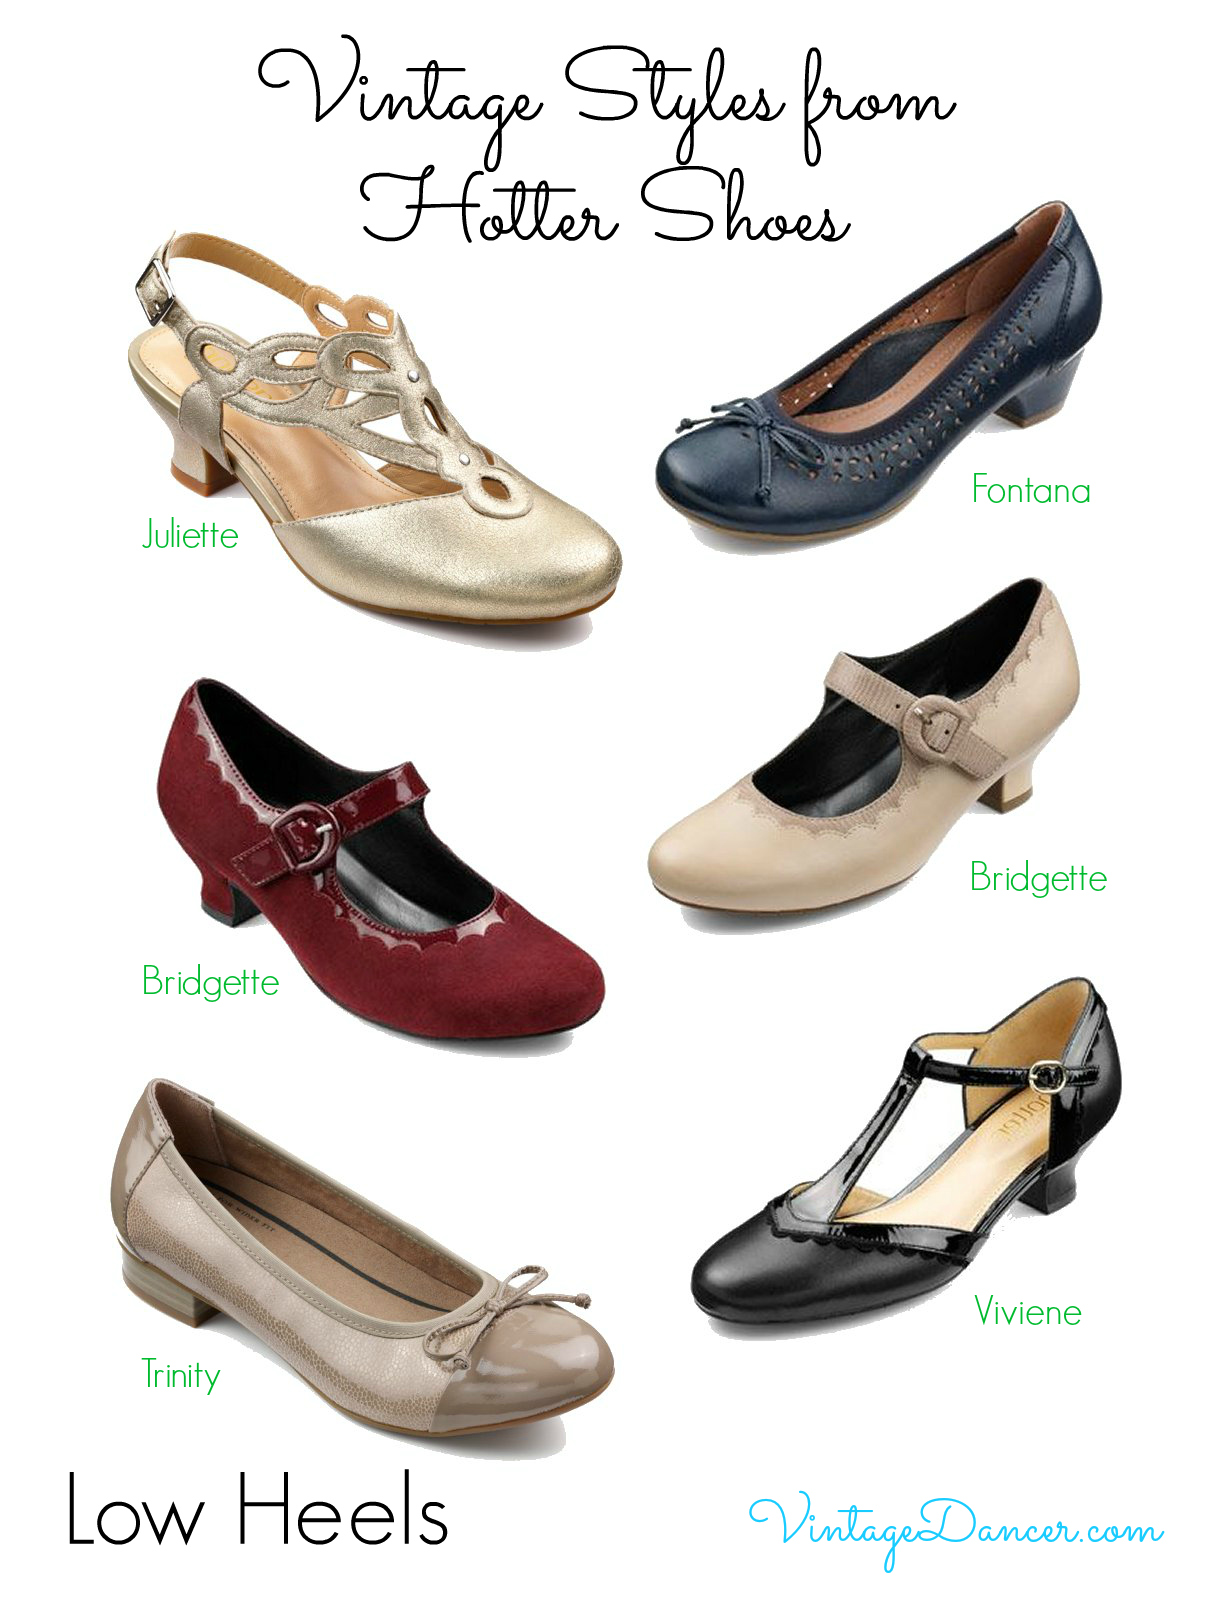 Vintage Inspired Shoe Styles From Hotter Shoes